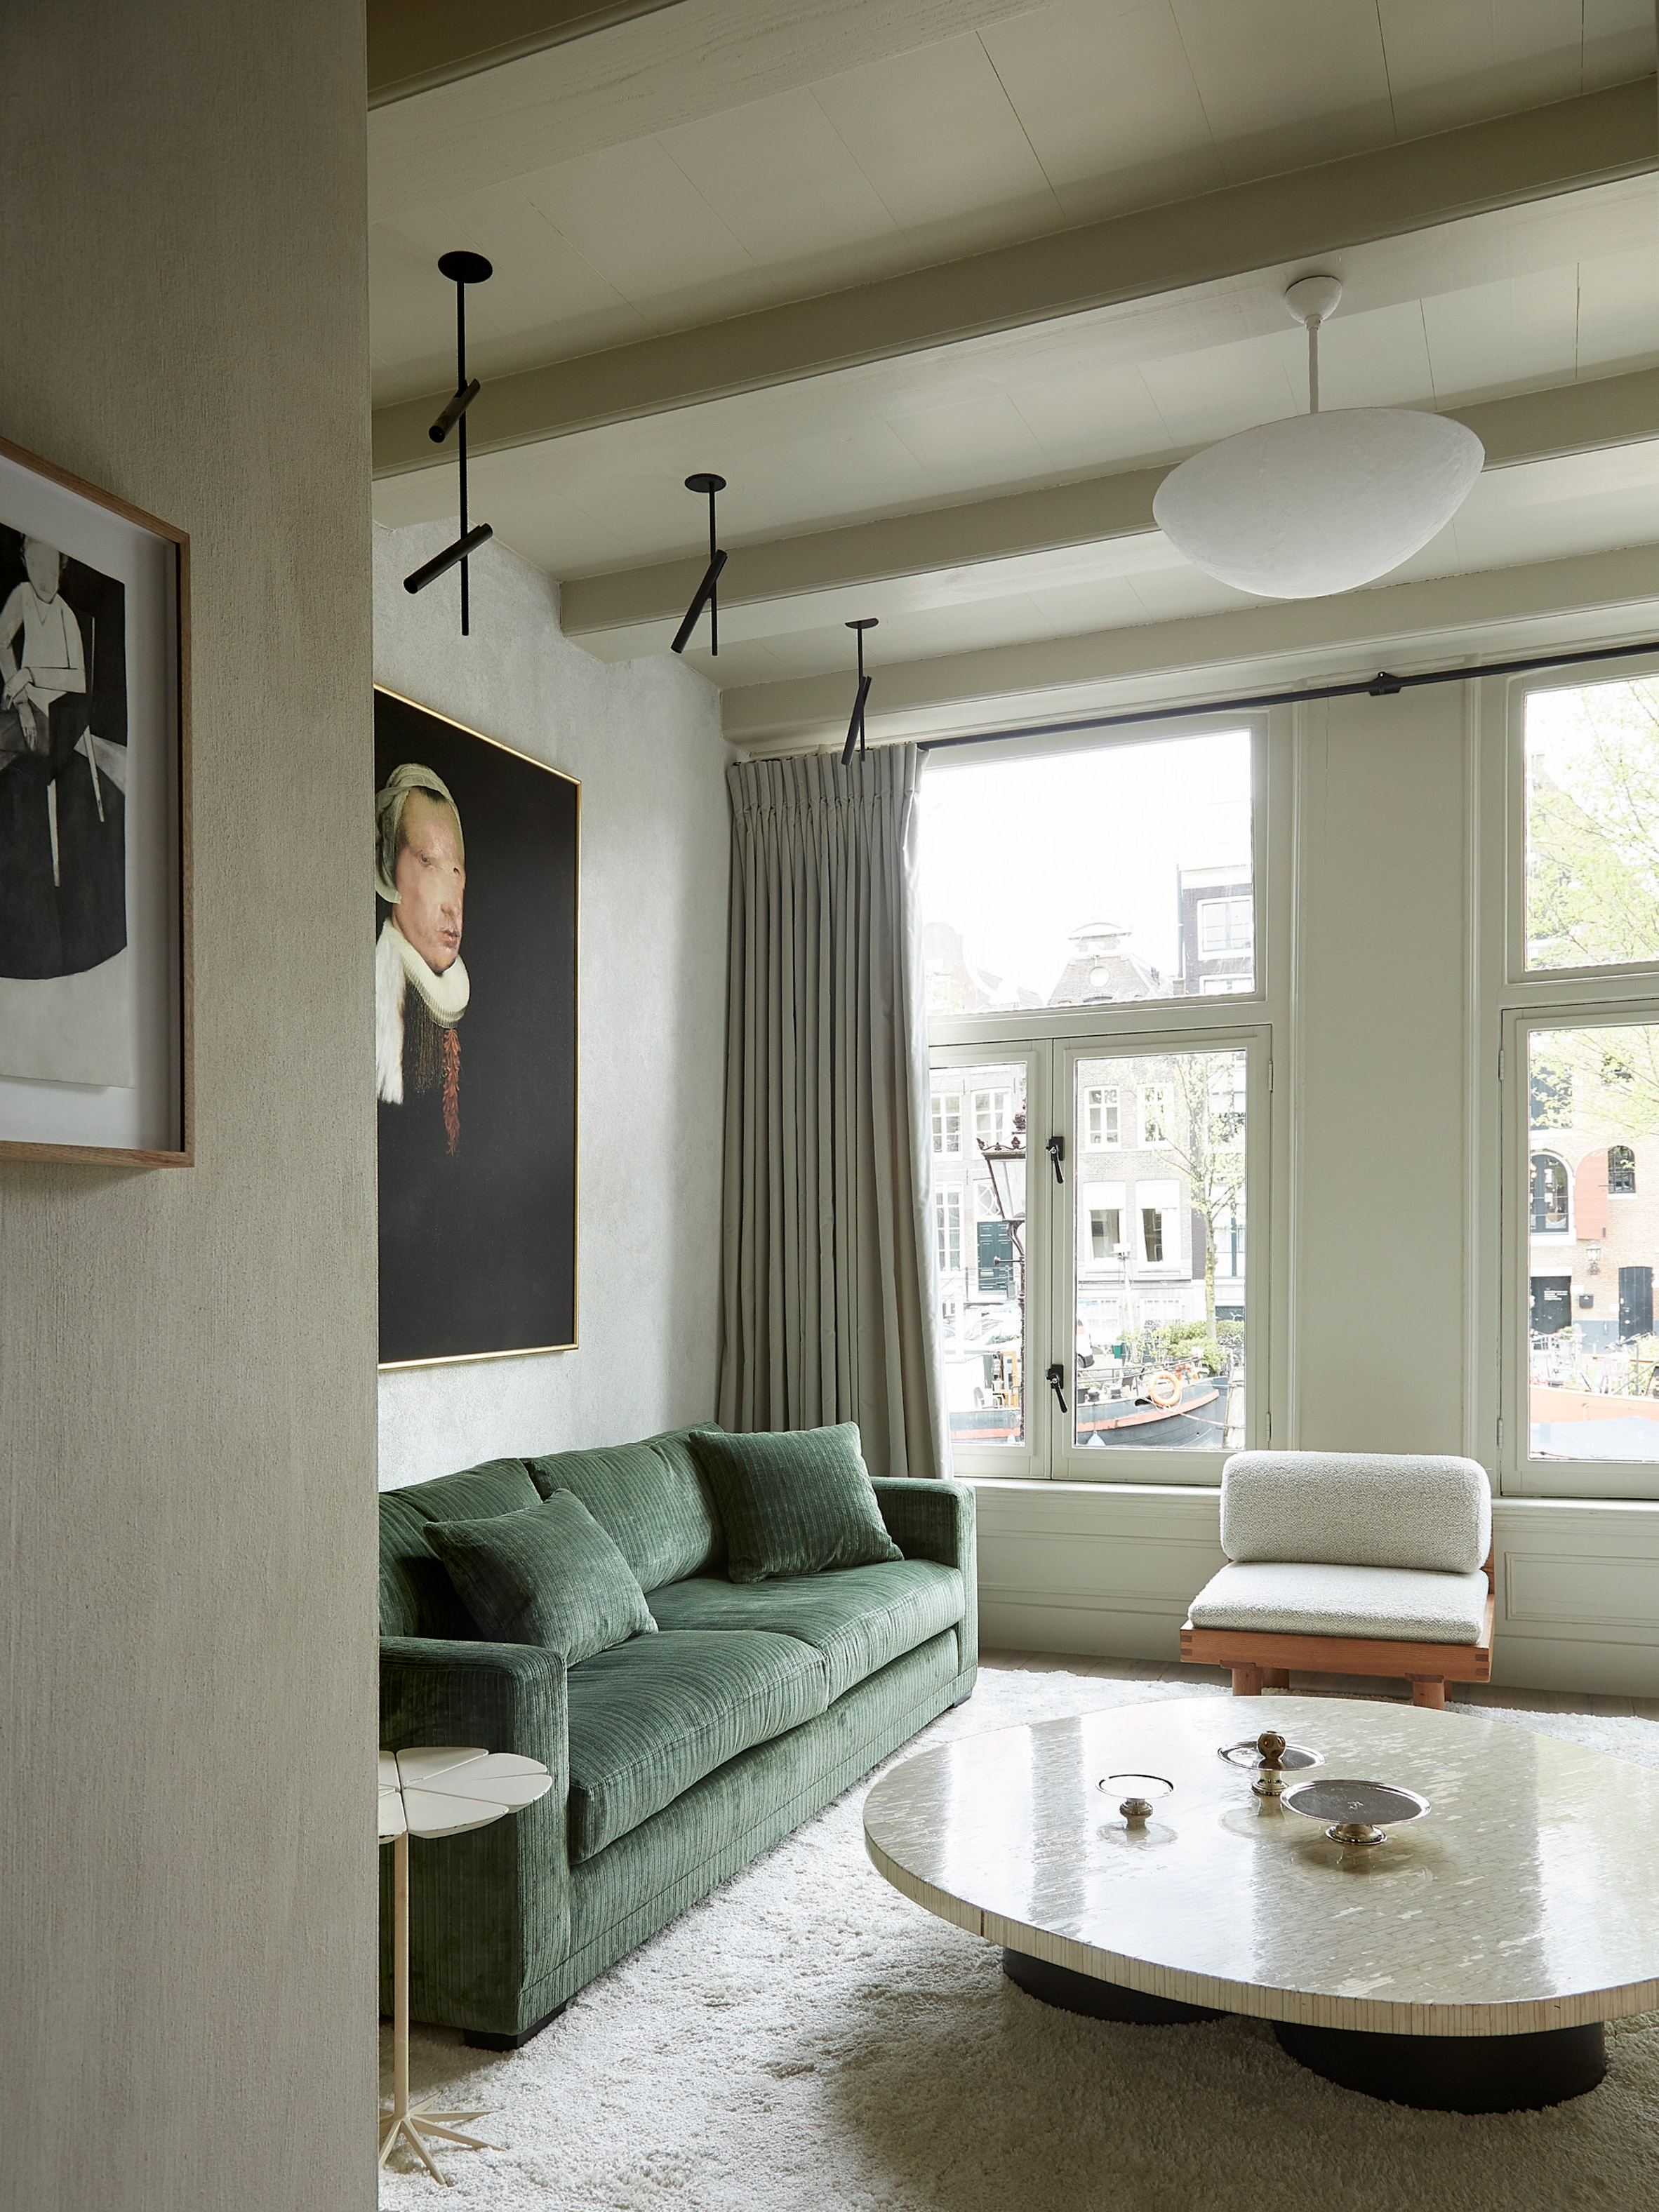 Canal house in Amsterdam by Thomas Geerlings of Framework Studio